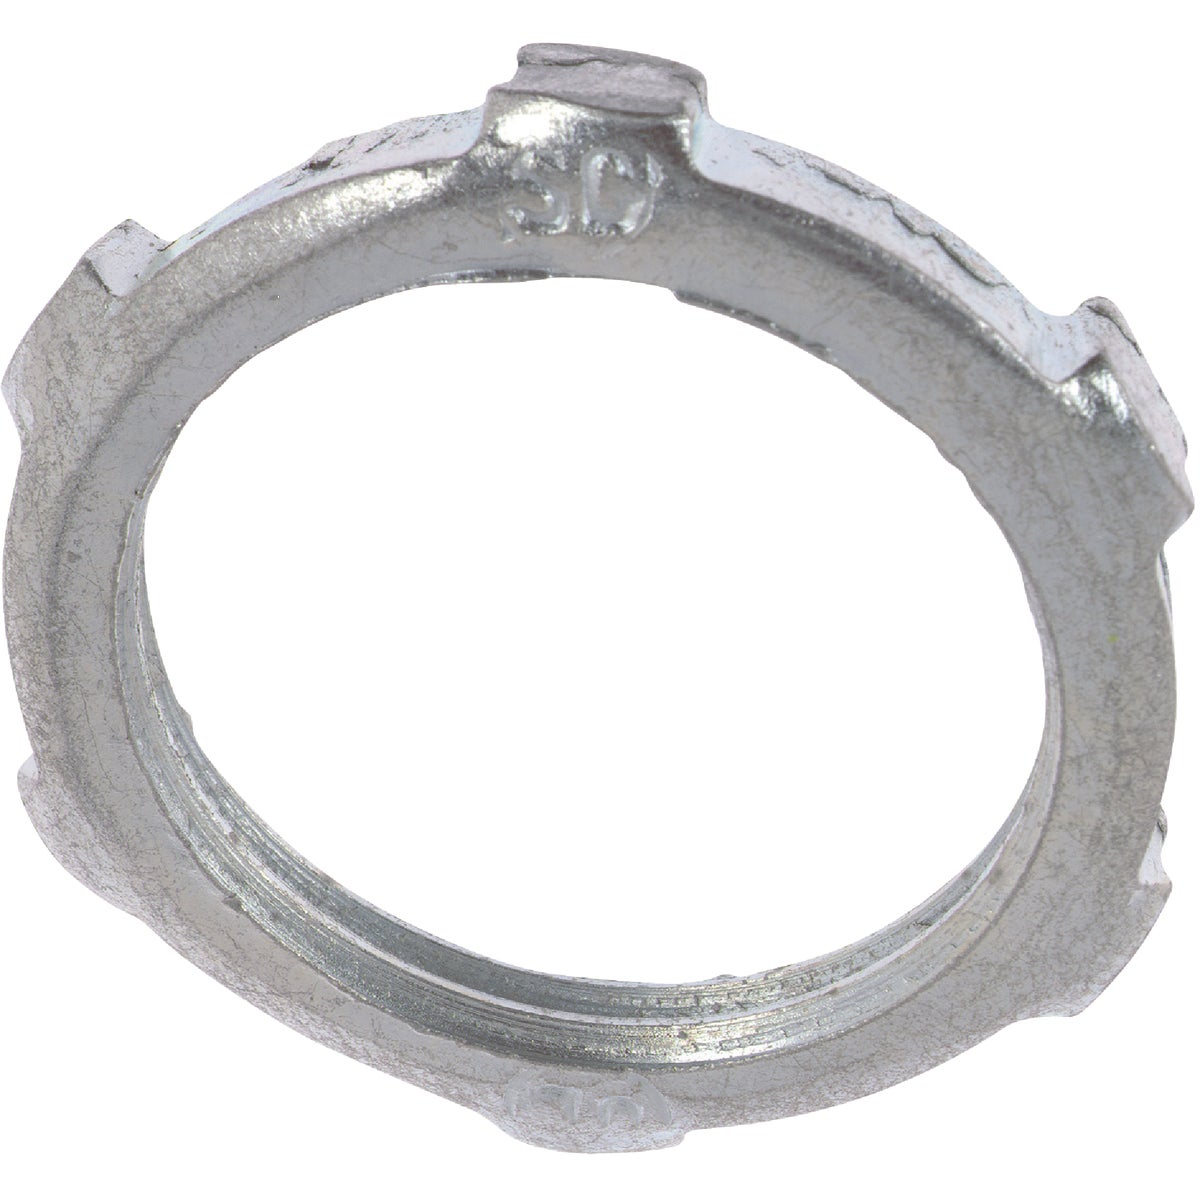 "1"" LOCKNUT - LN1031 by Thomas & Betts"